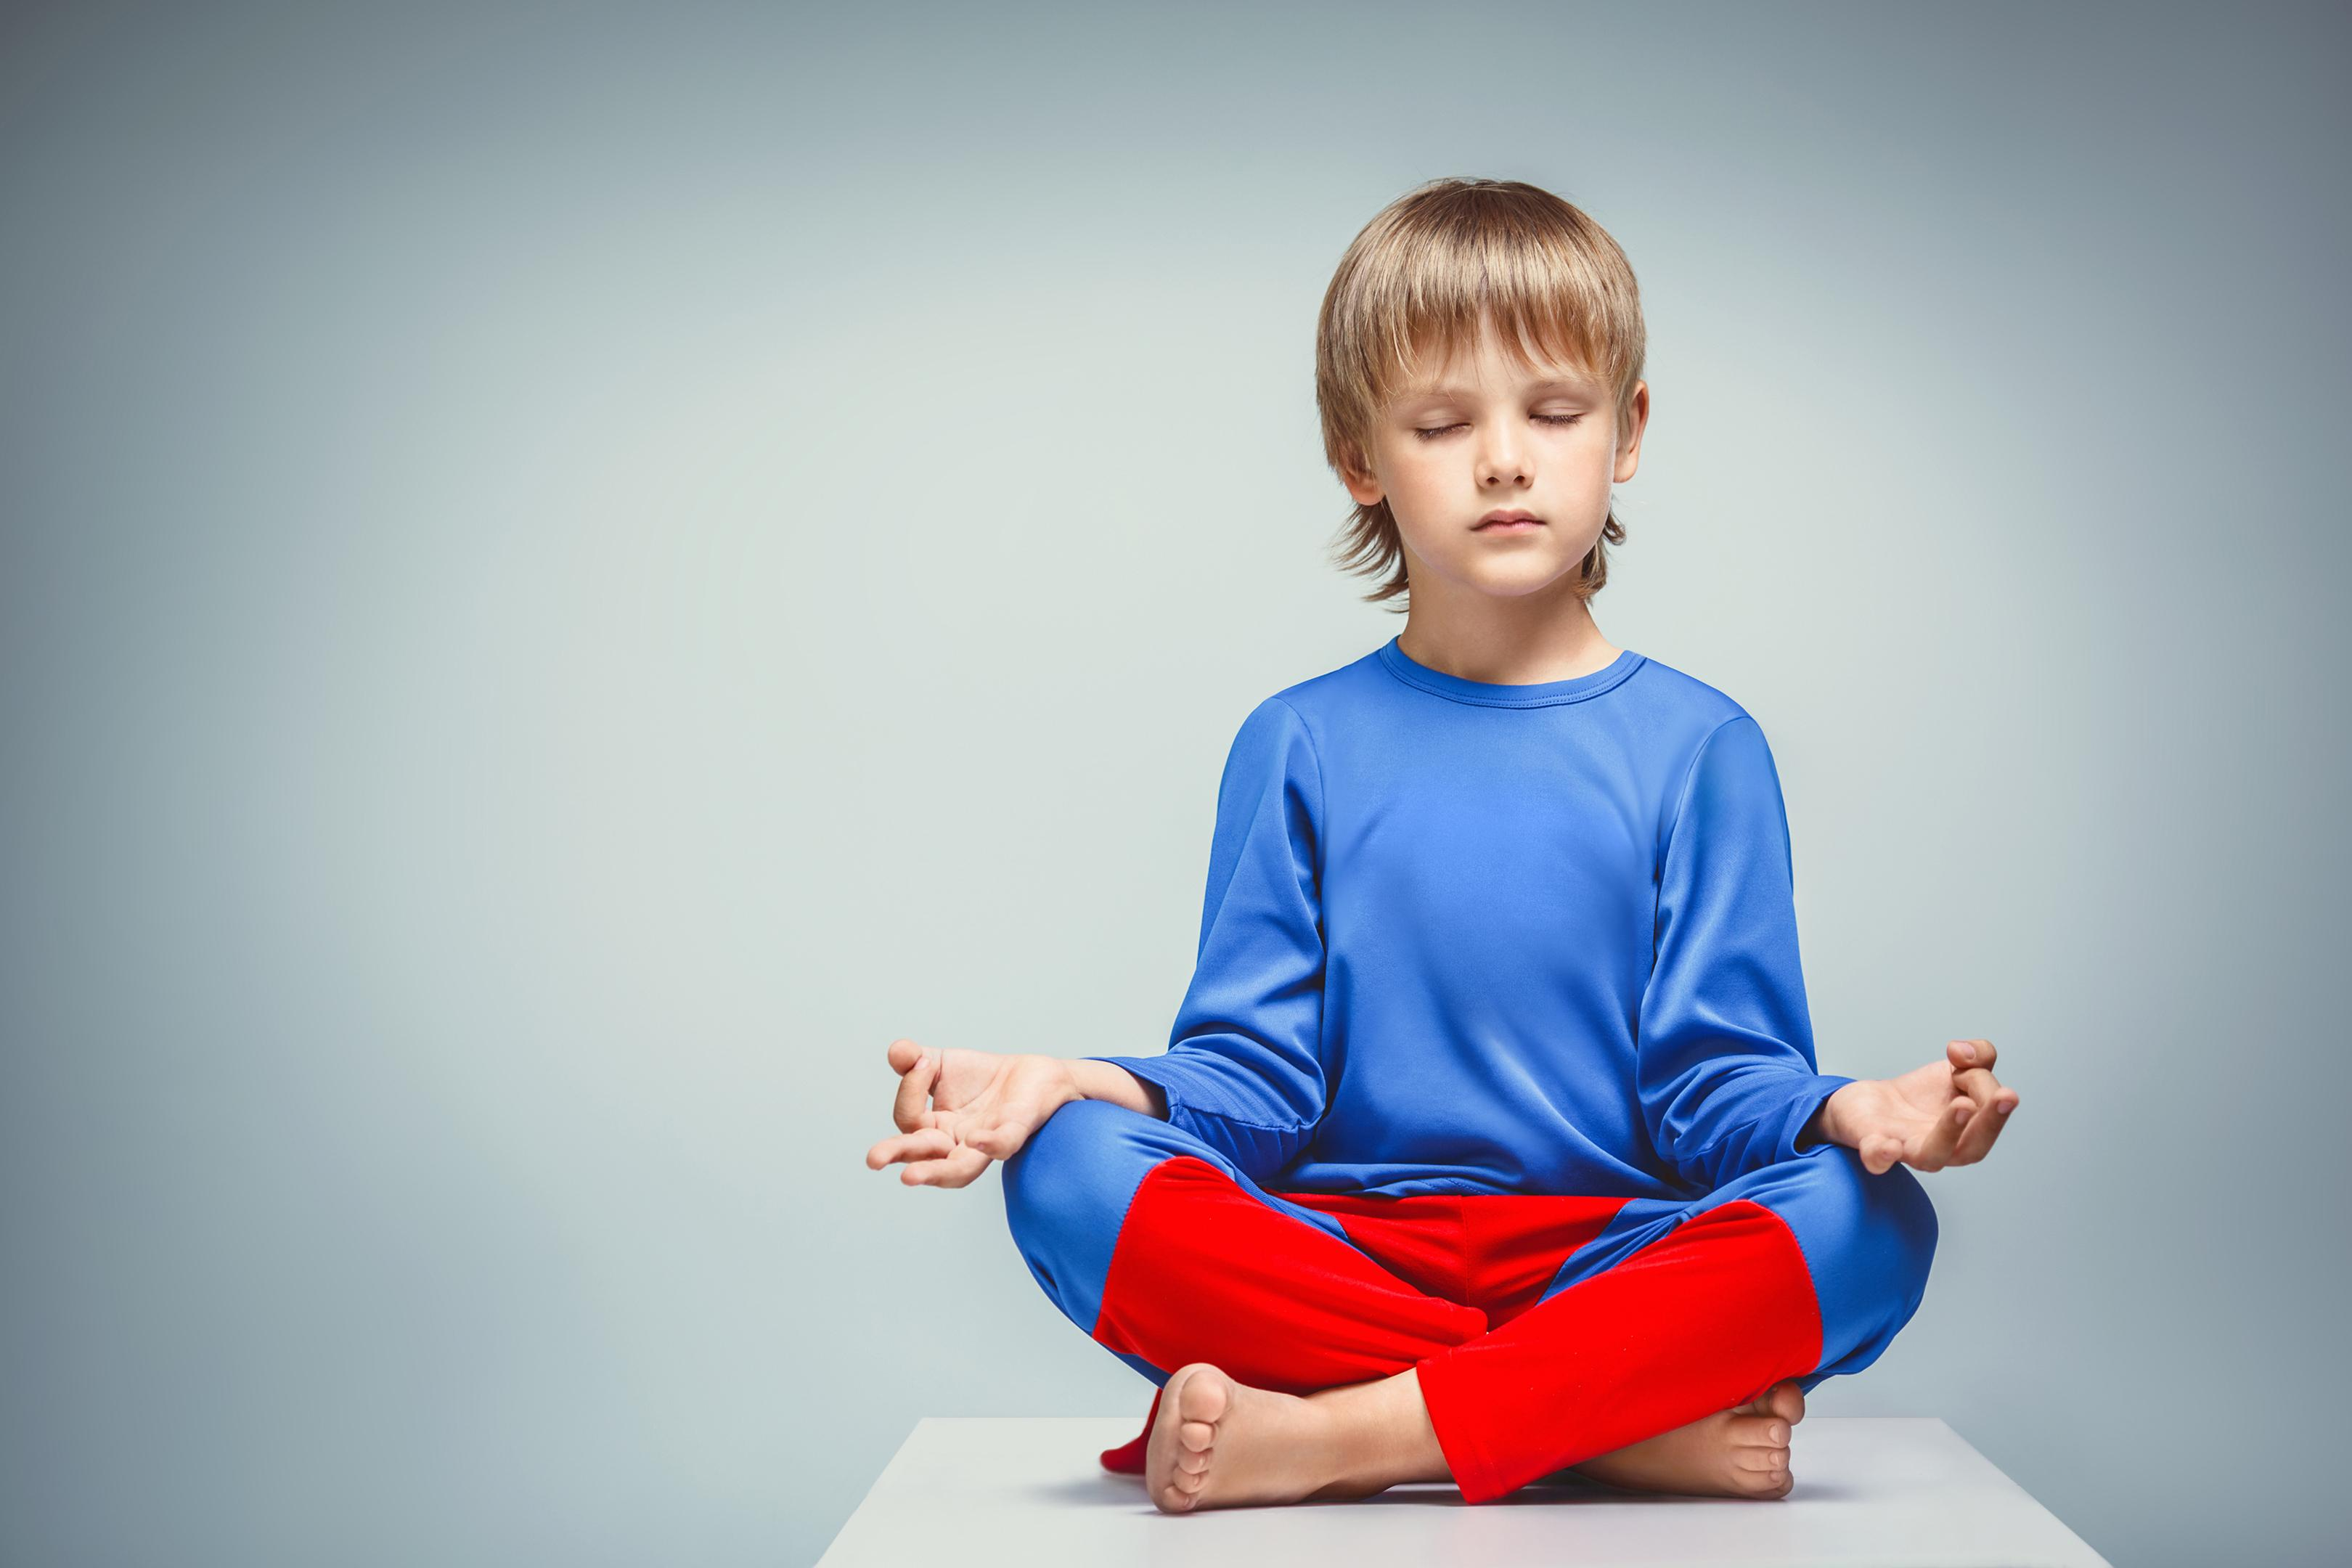 Can meditation help kids with autism better cope with